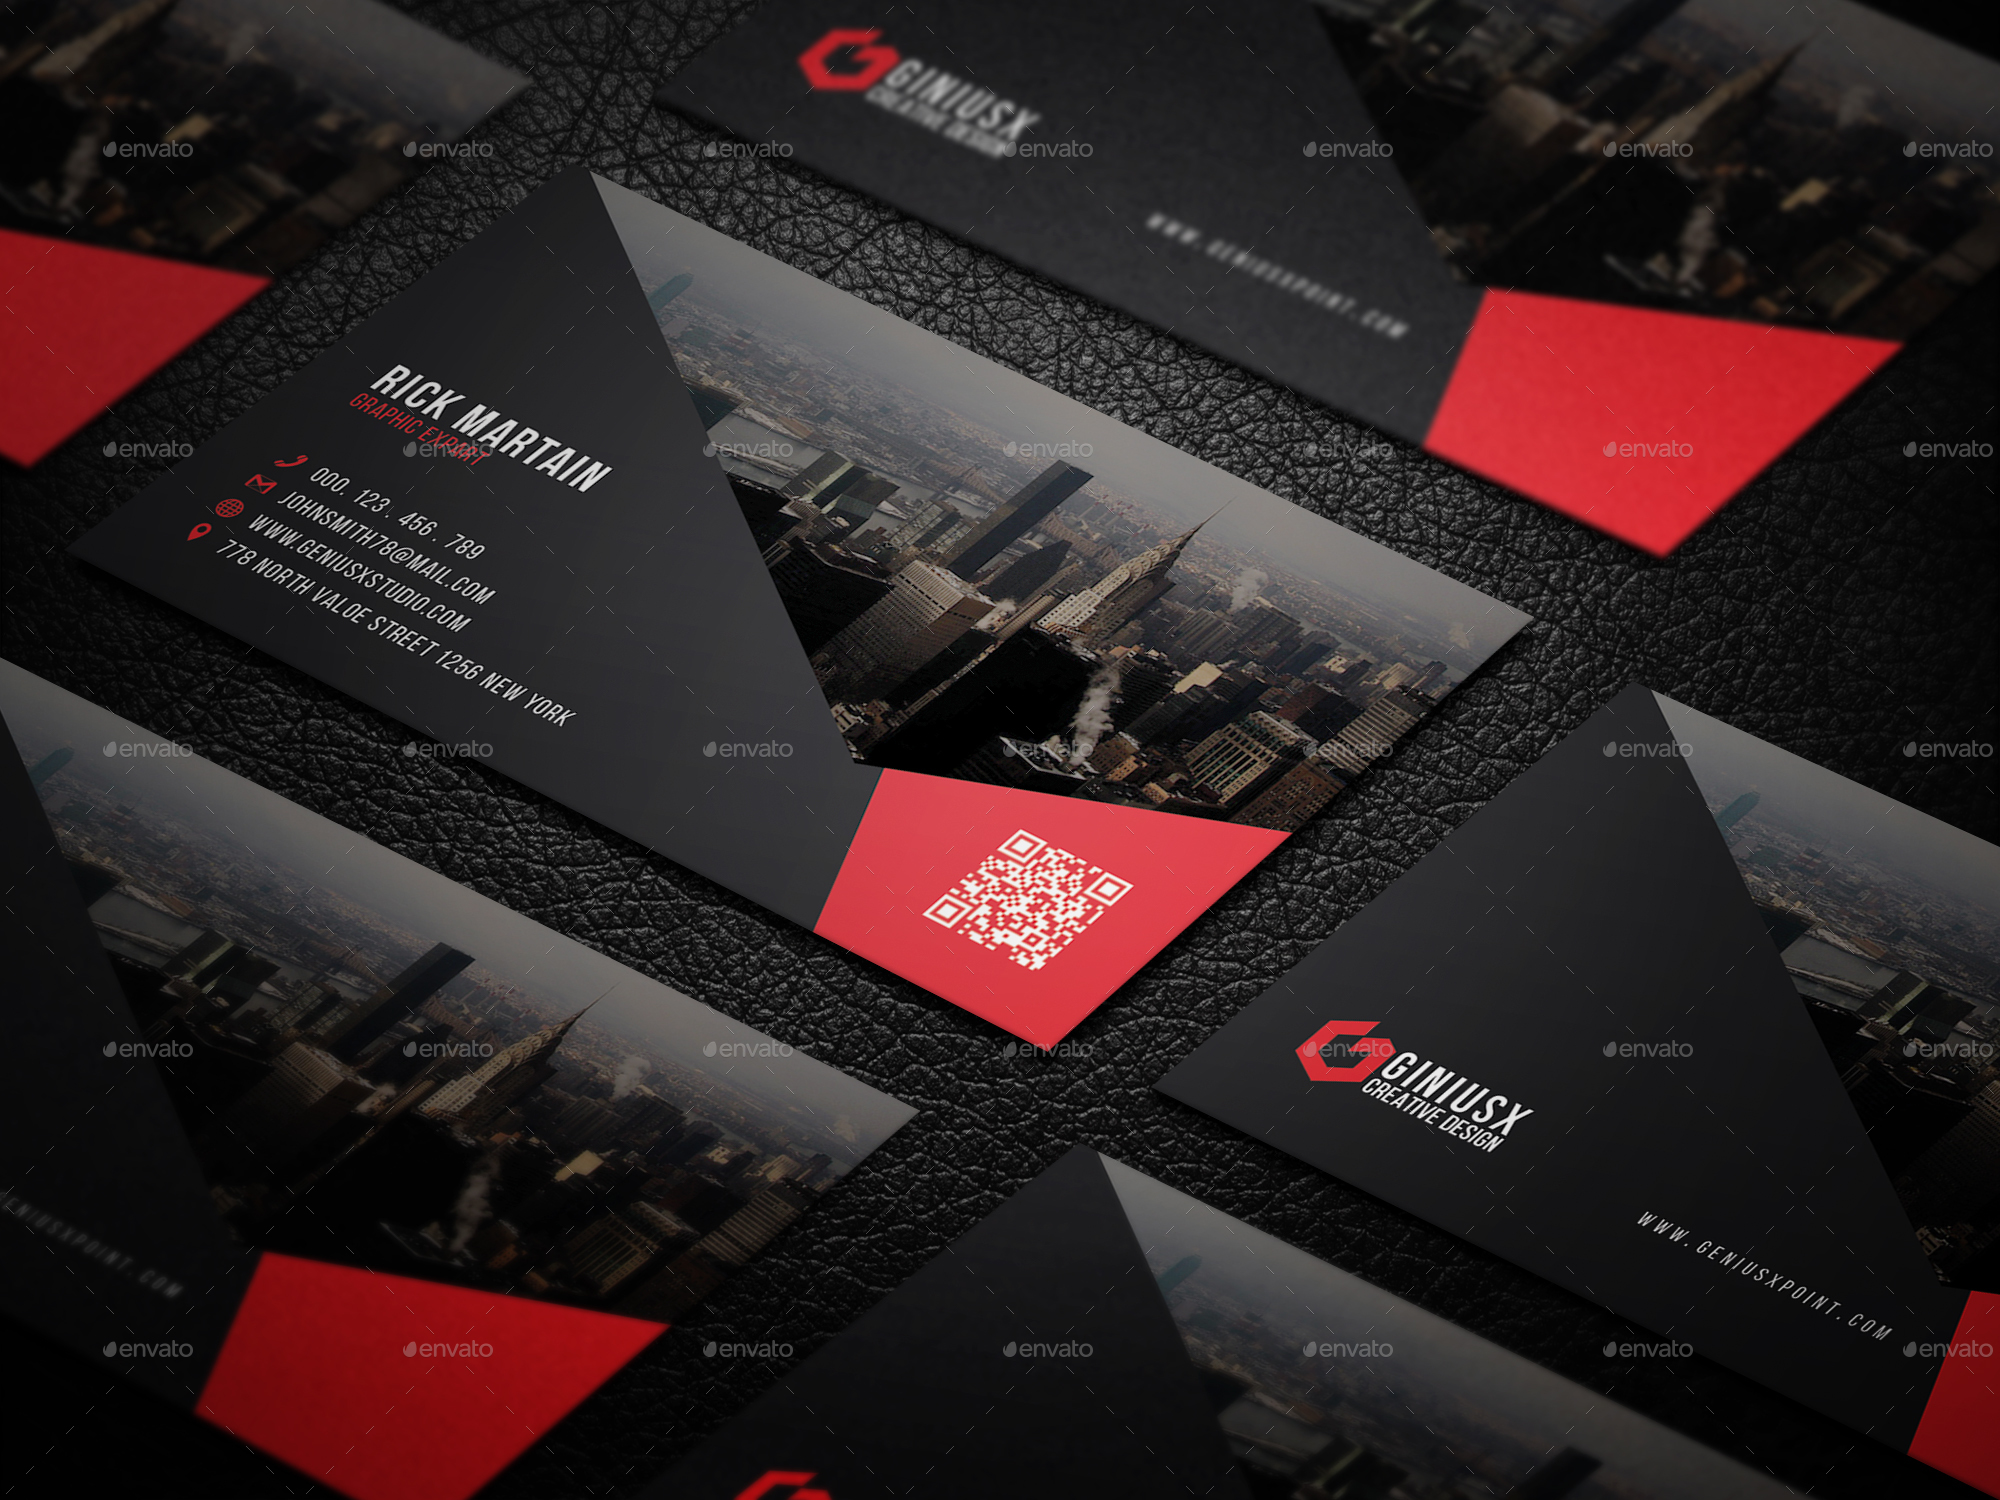 Creative business cards image collections free business cards creative business card by geniuspoint graphicriver creative business cards 01previewg 02previewg magicingreecefo image collections magicingreecefo Images